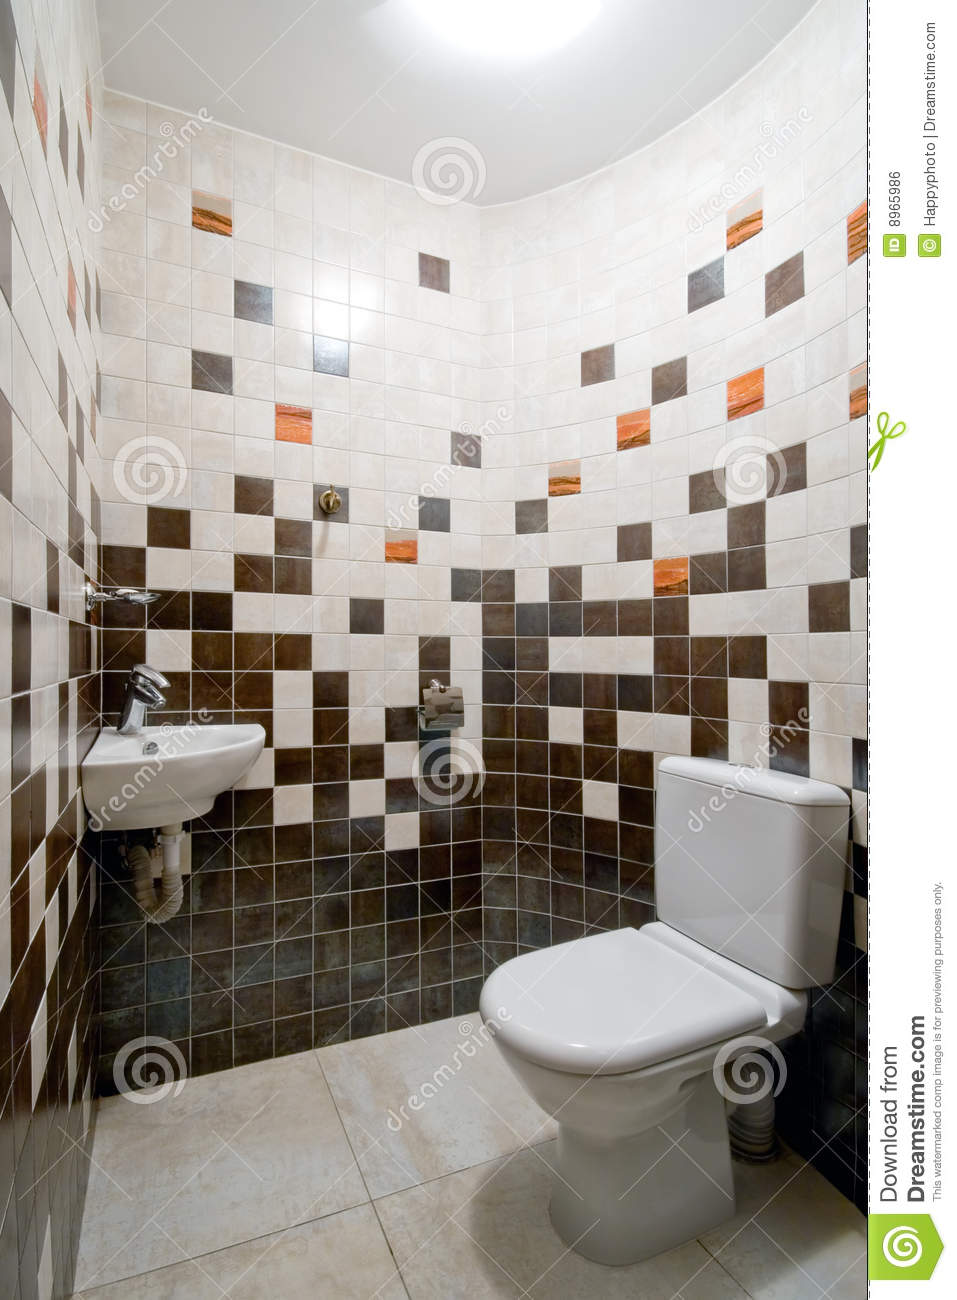 Simple Toilet Room Royalty Free Stock Image  Image 8965986